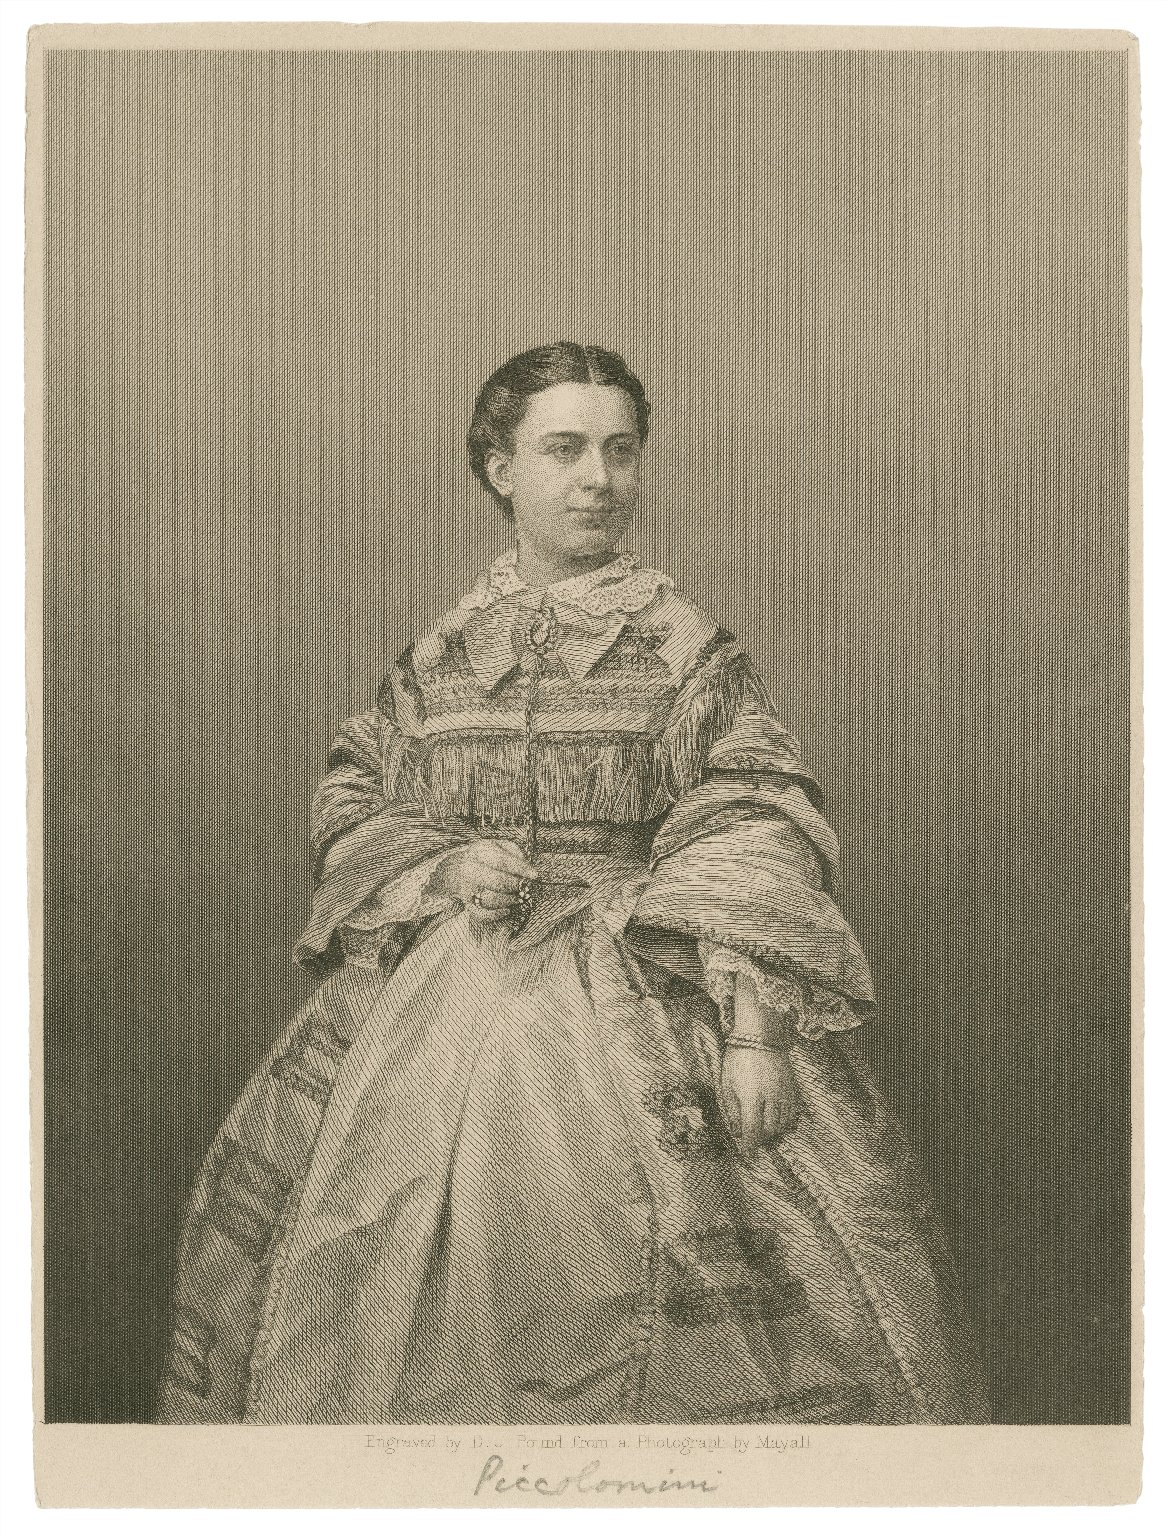 [Maria Piccolomini] [graphic] / engraved by D.J. Pound from a photograph by Mayall.